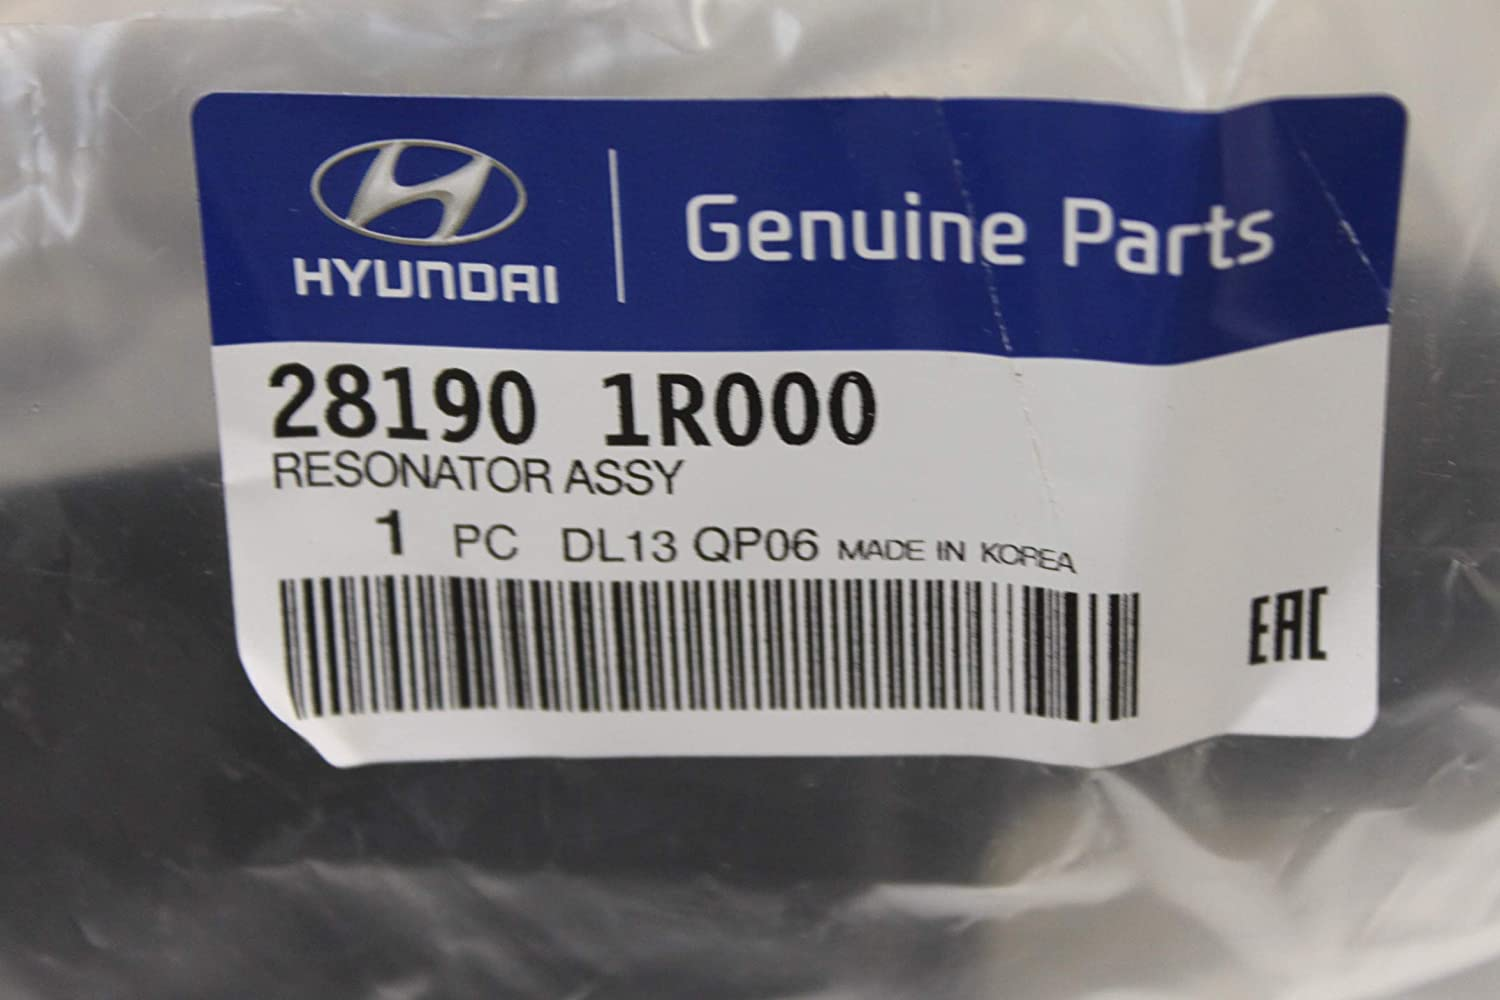 GENUINE AIR INTAKE RESONATOR 281901R000 FOR HYUNDAI ACCENT 2012-2017